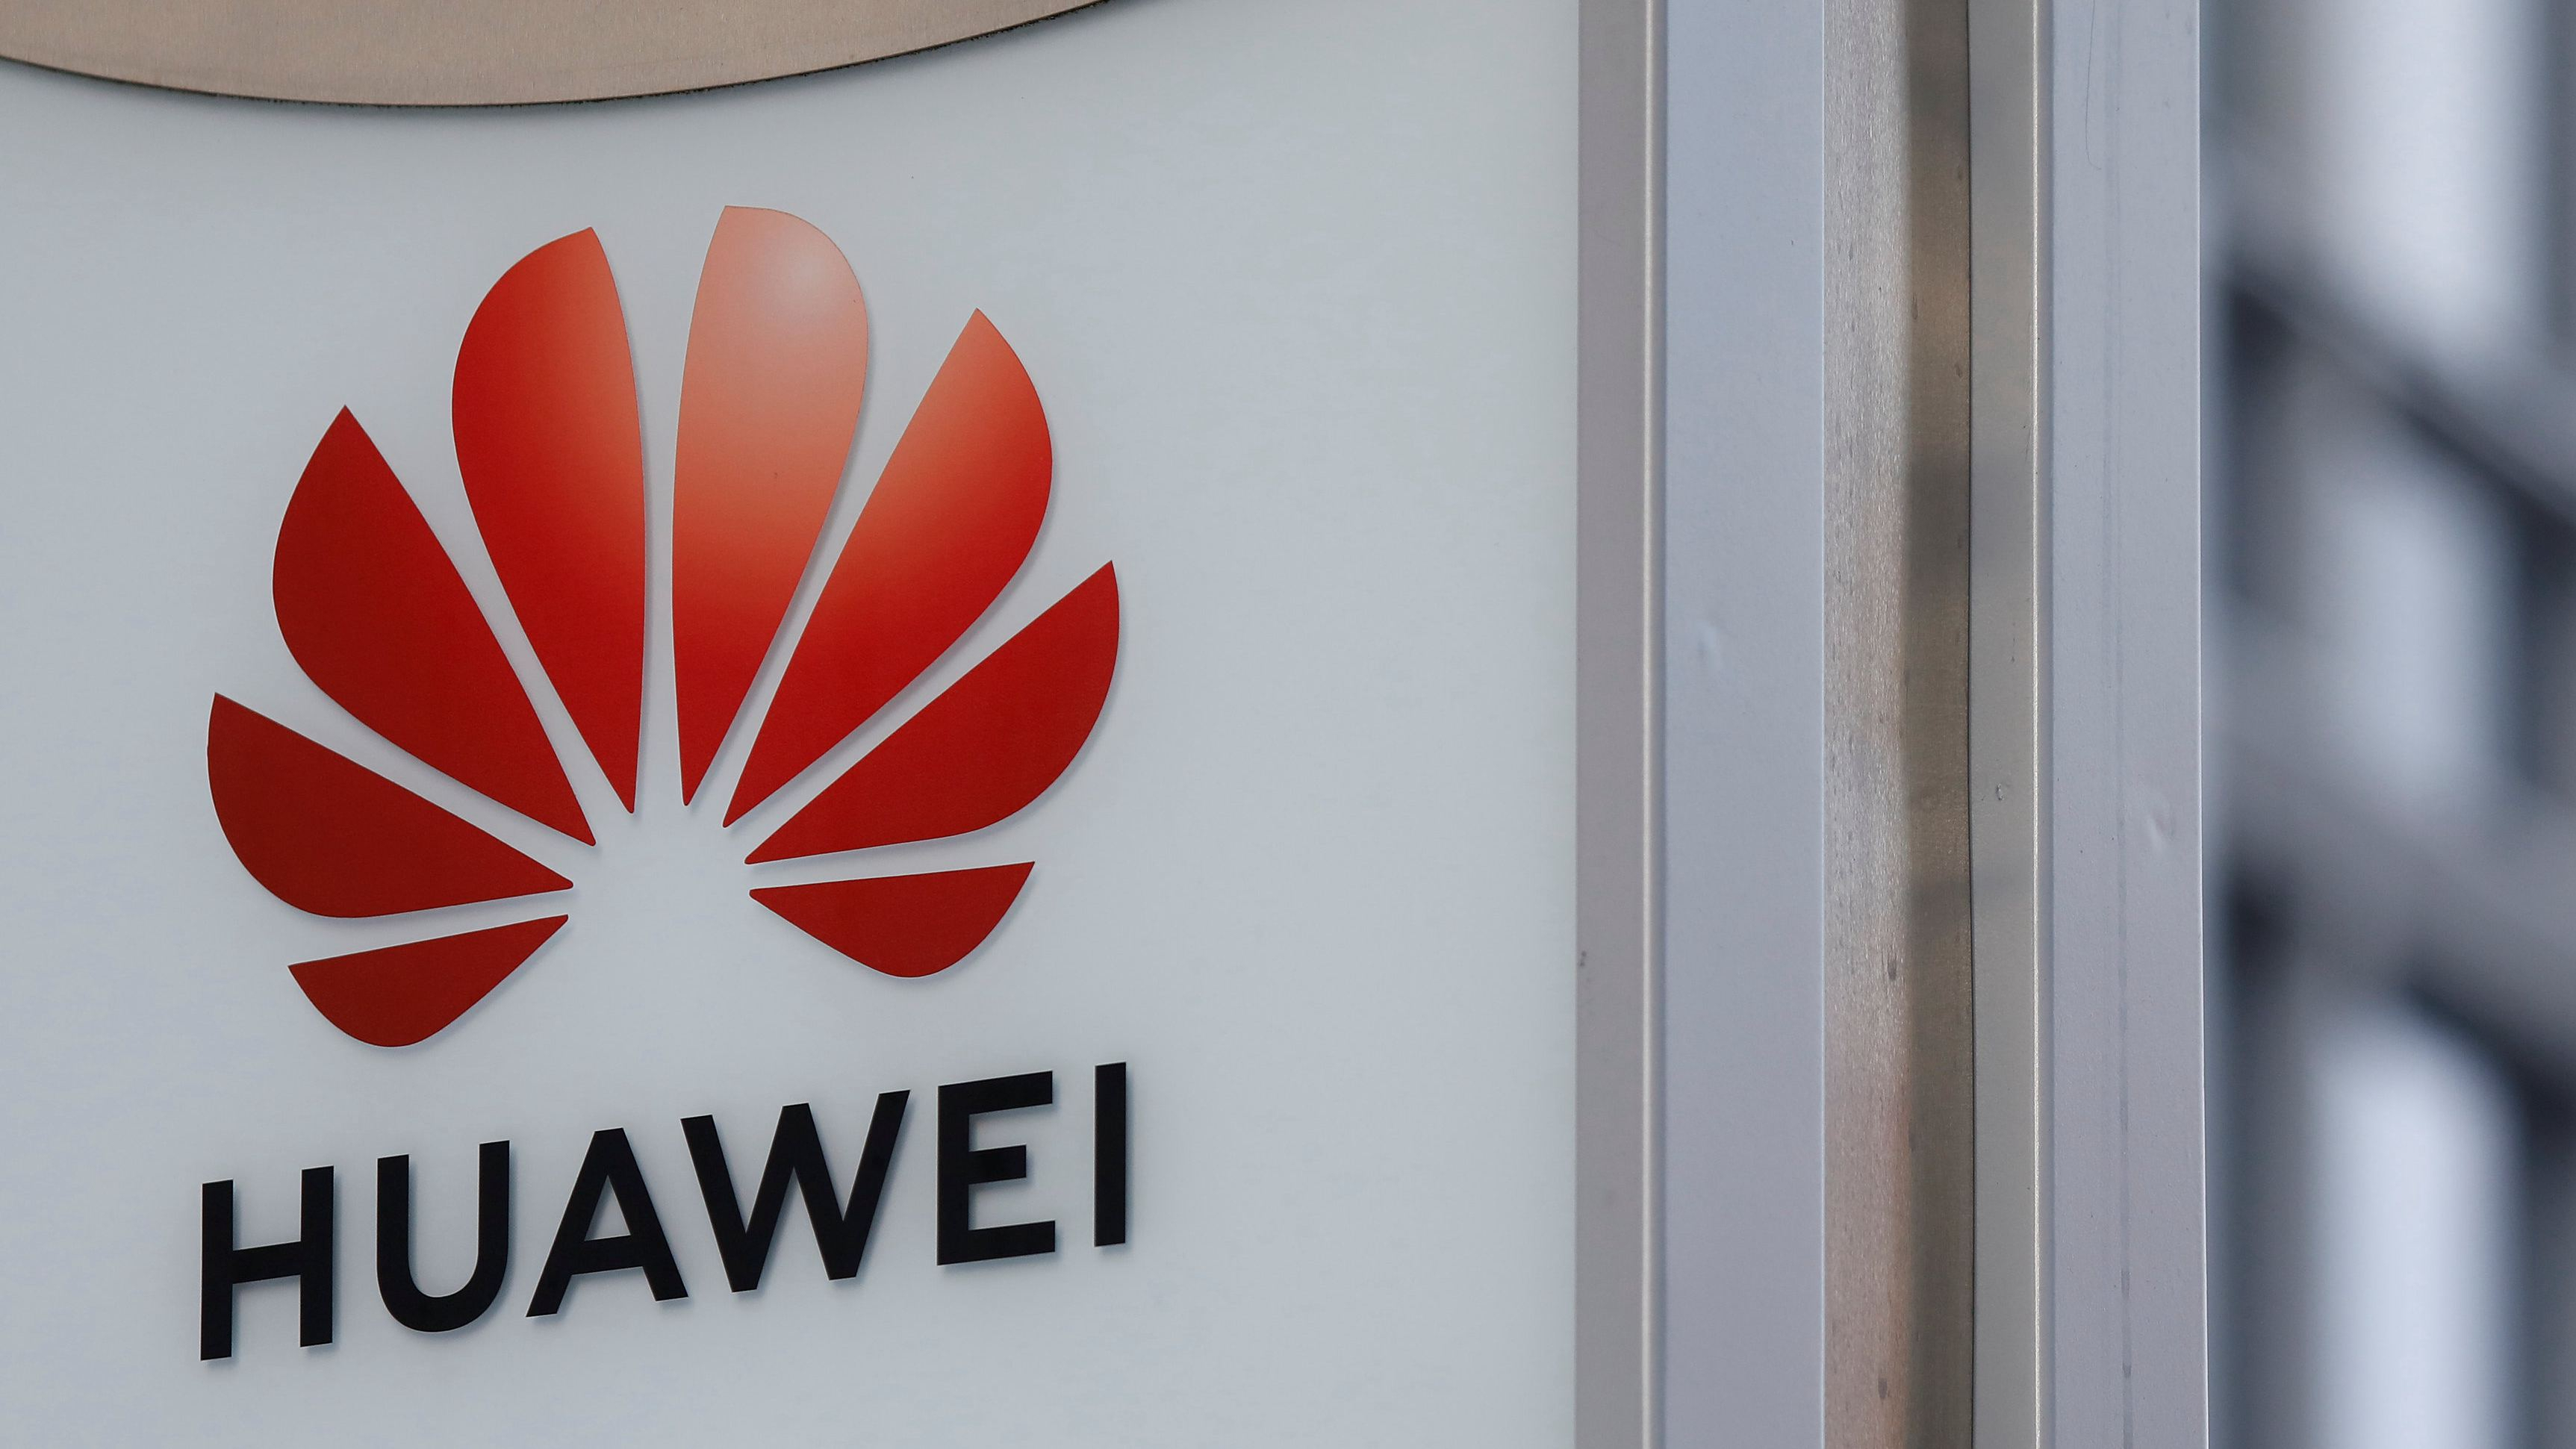 Huawei files motion against US ban: it's unconstitutional